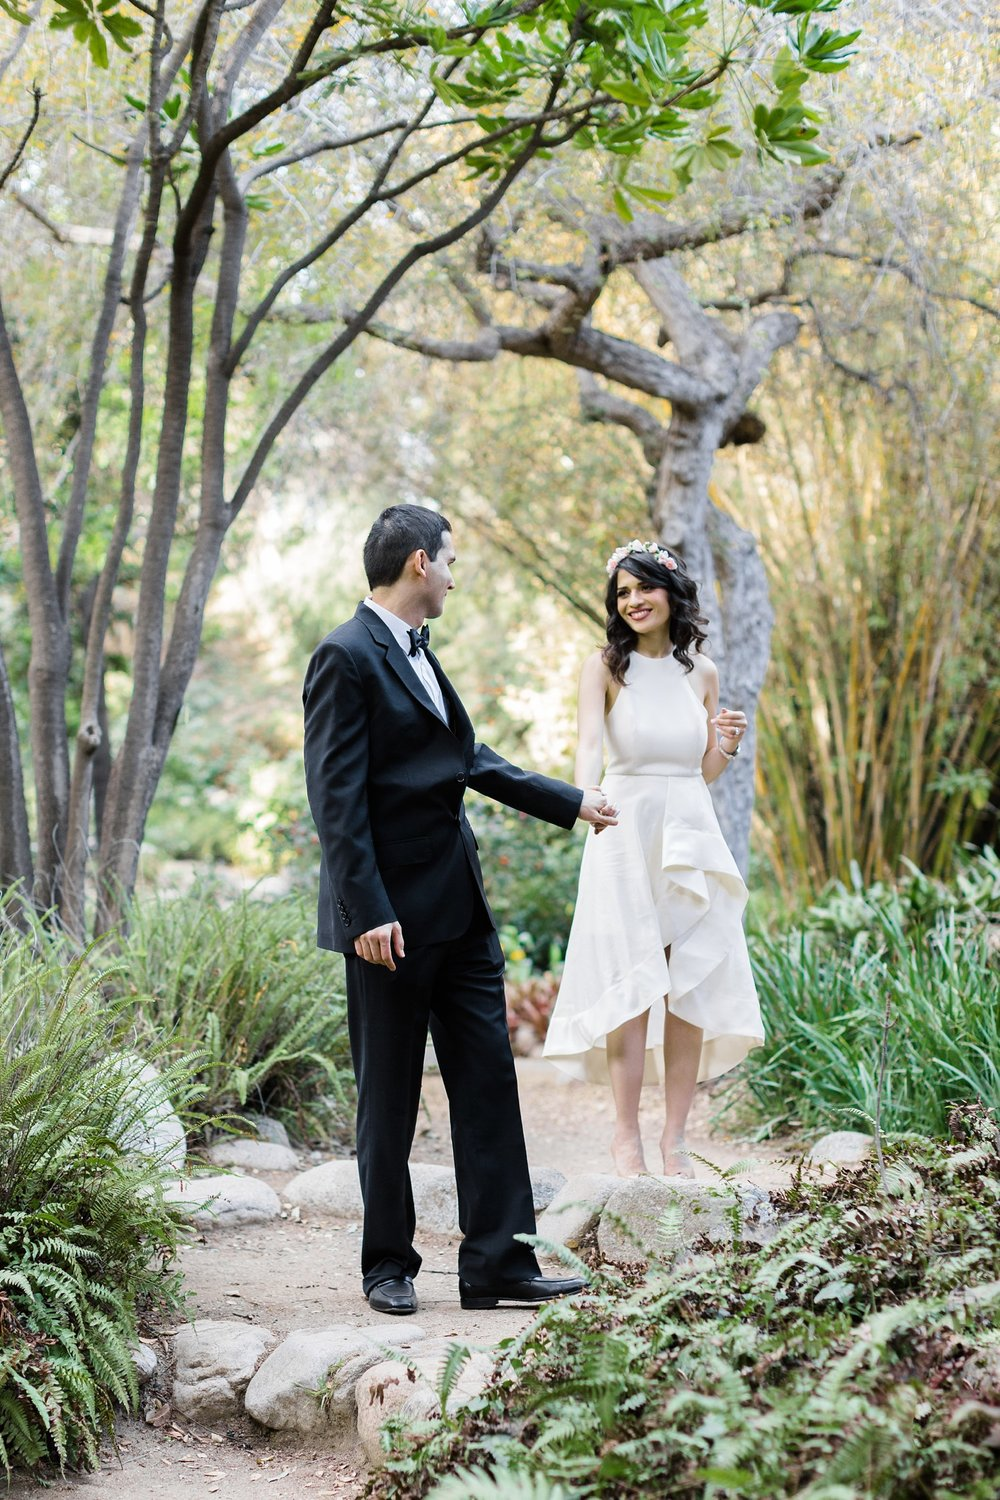 groom leading bride through botanical garden